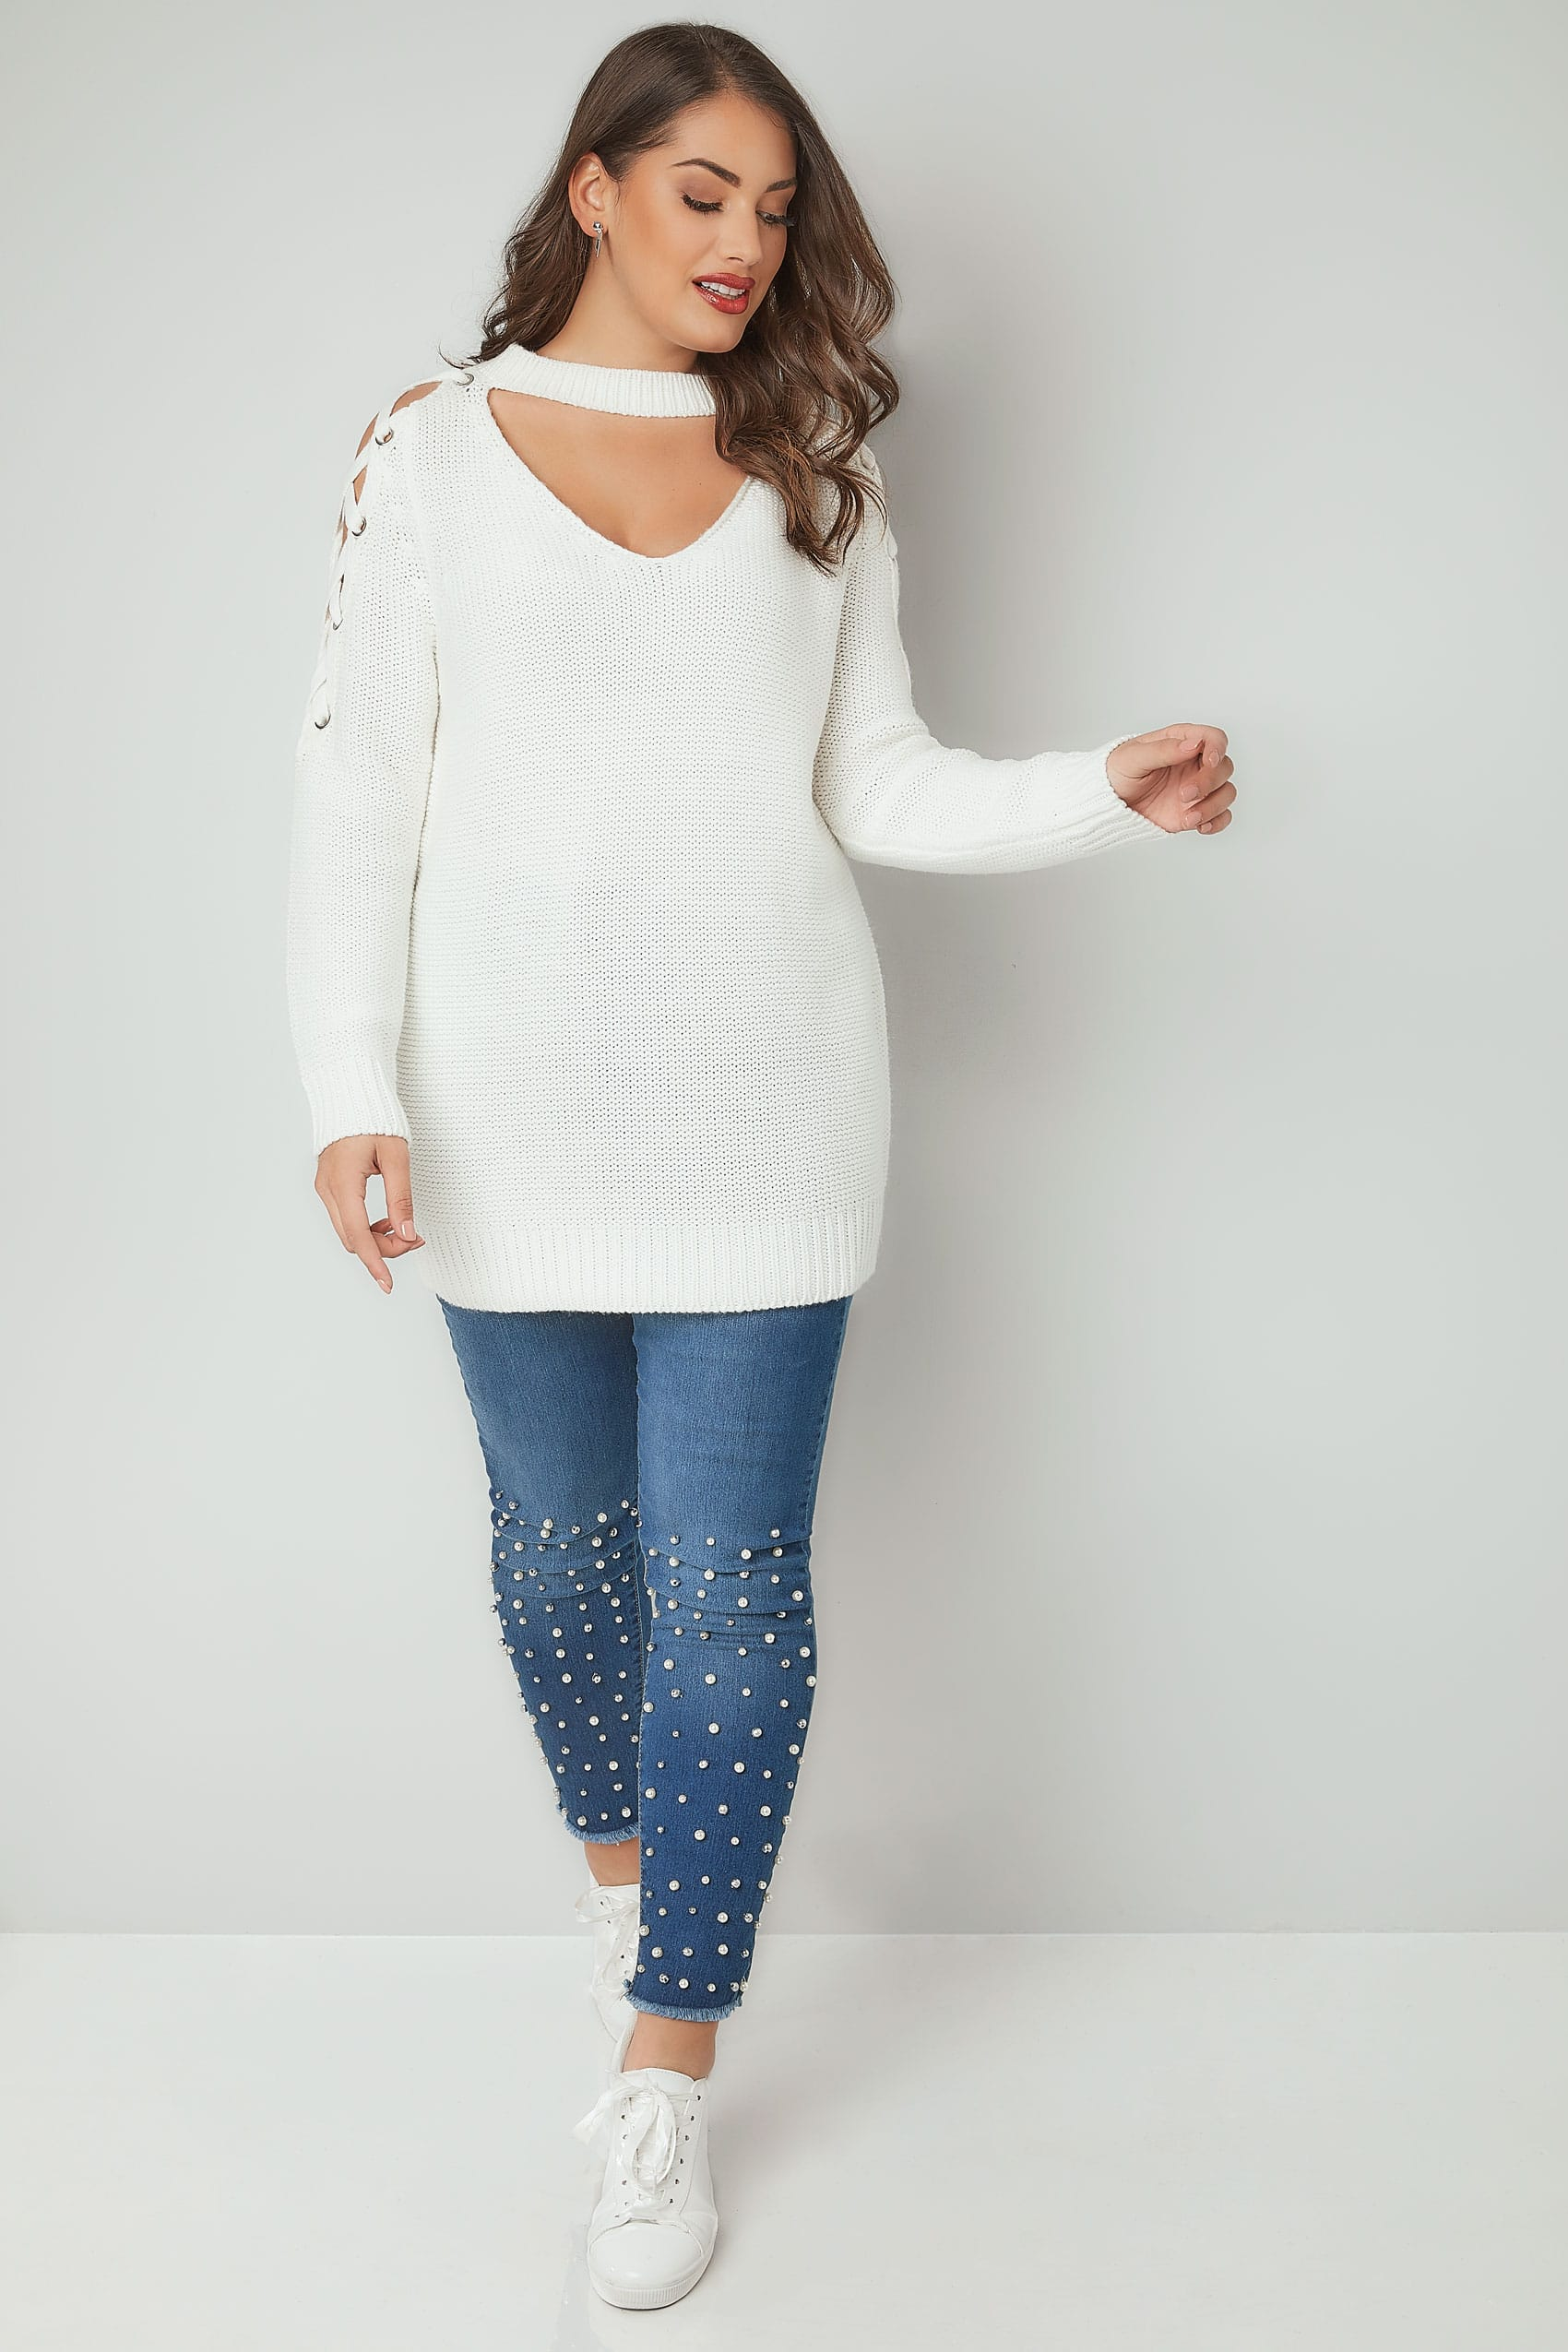 Home Design App Love It Or List It Limited Collection White Choker Jumper With Lace Sleeves